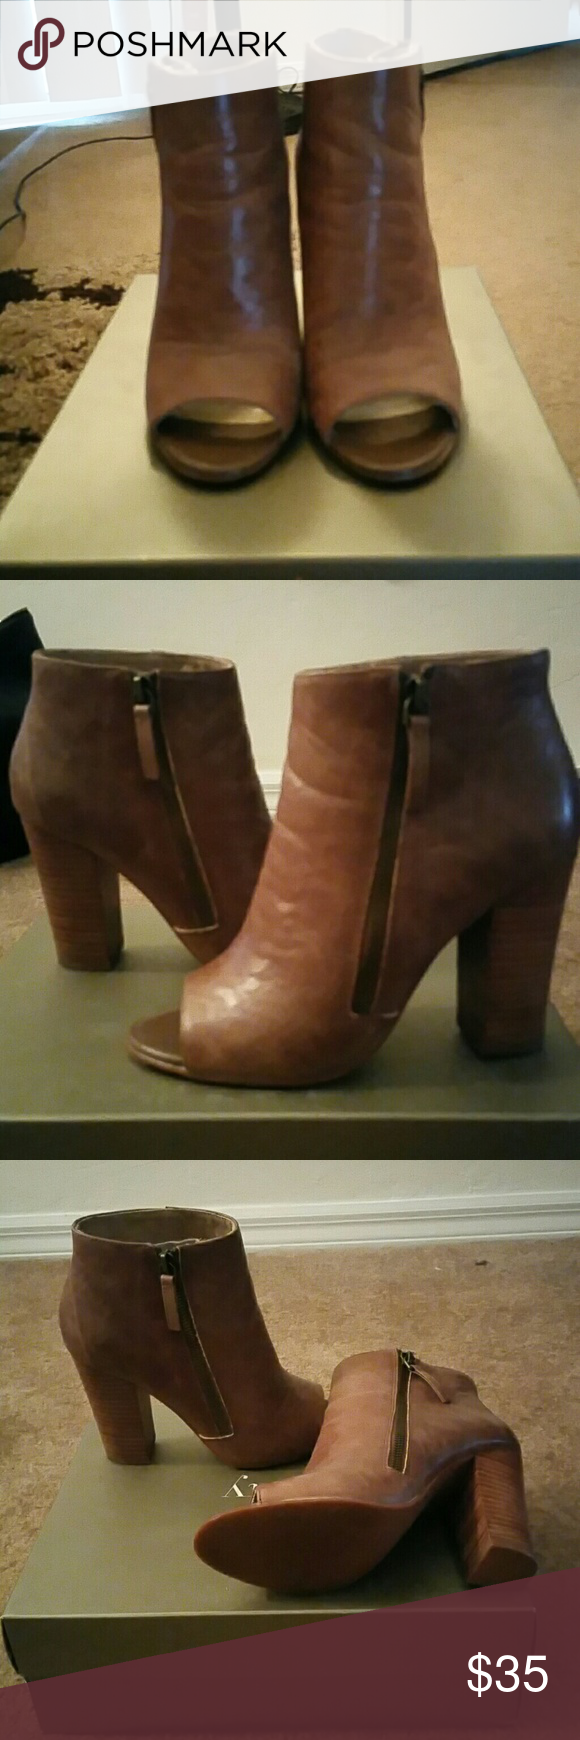 6d9681f8204 Levity Bootie Only Worn Once, In Box, Leather, Open Toe, Bootie With ...